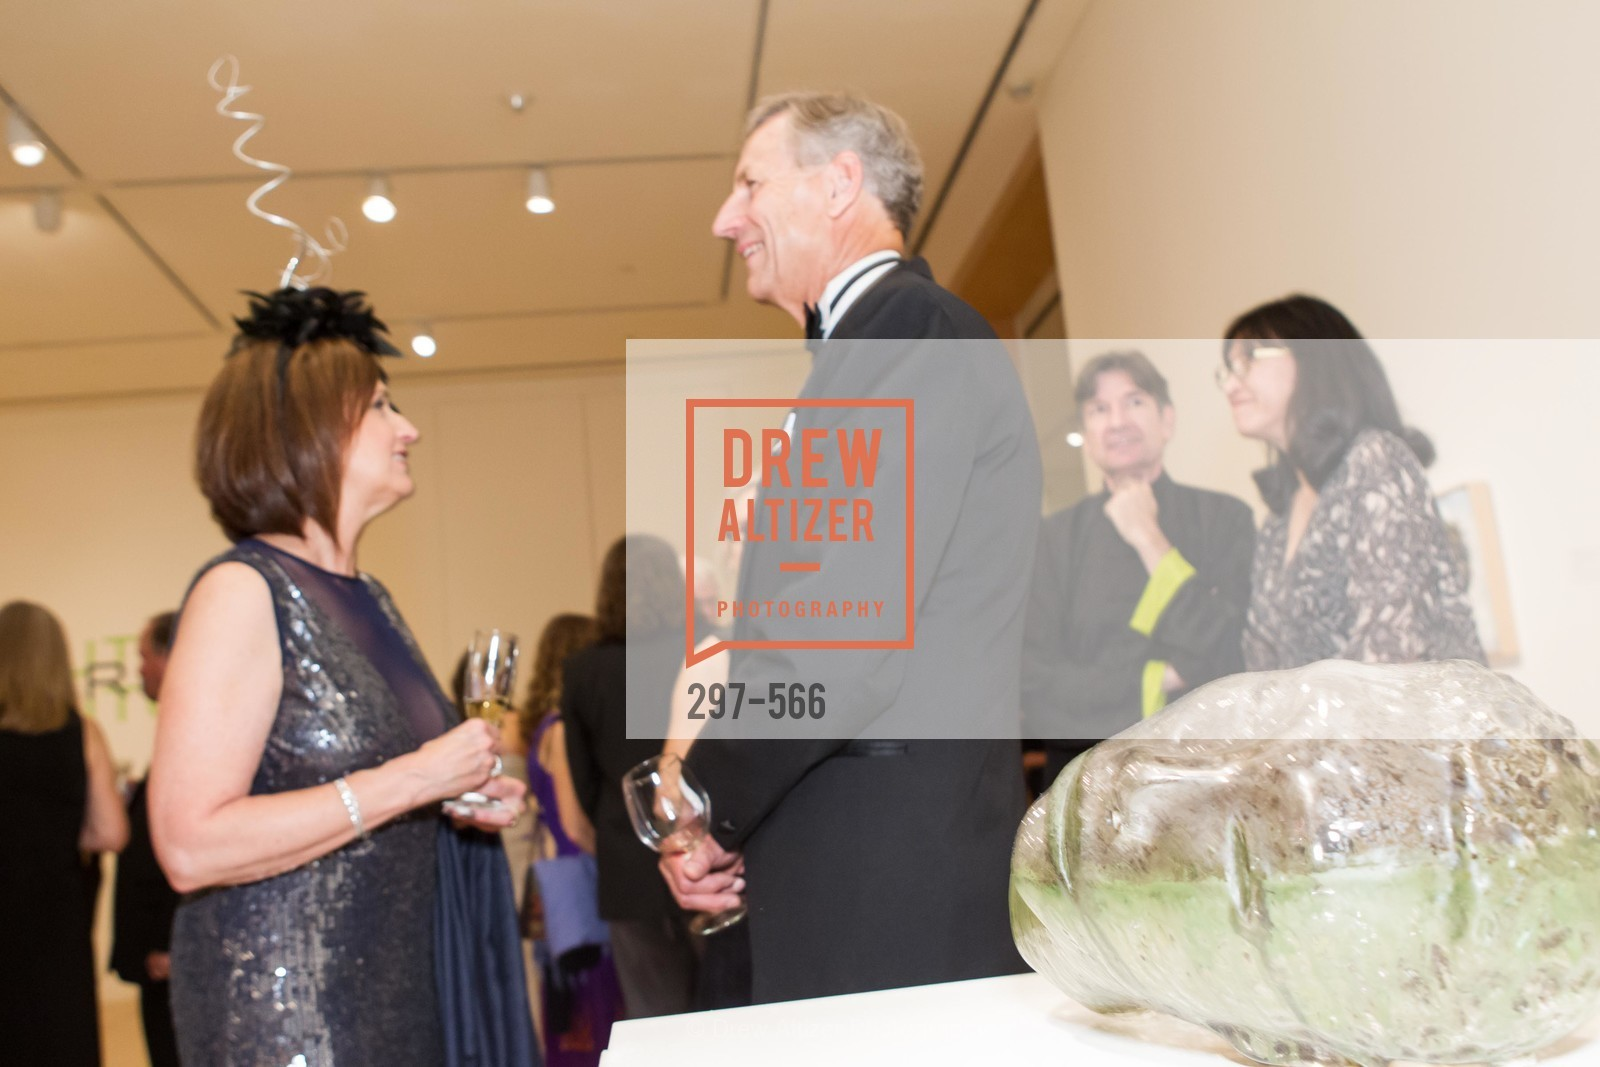 Atmosphere, SAN JOSE MUSEUM OF ART'S Spectrum Gala - 45th Anniversary, US, September 13th, 2014,Drew Altizer, Drew Altizer Photography, full-service agency, private events, San Francisco photographer, photographer california